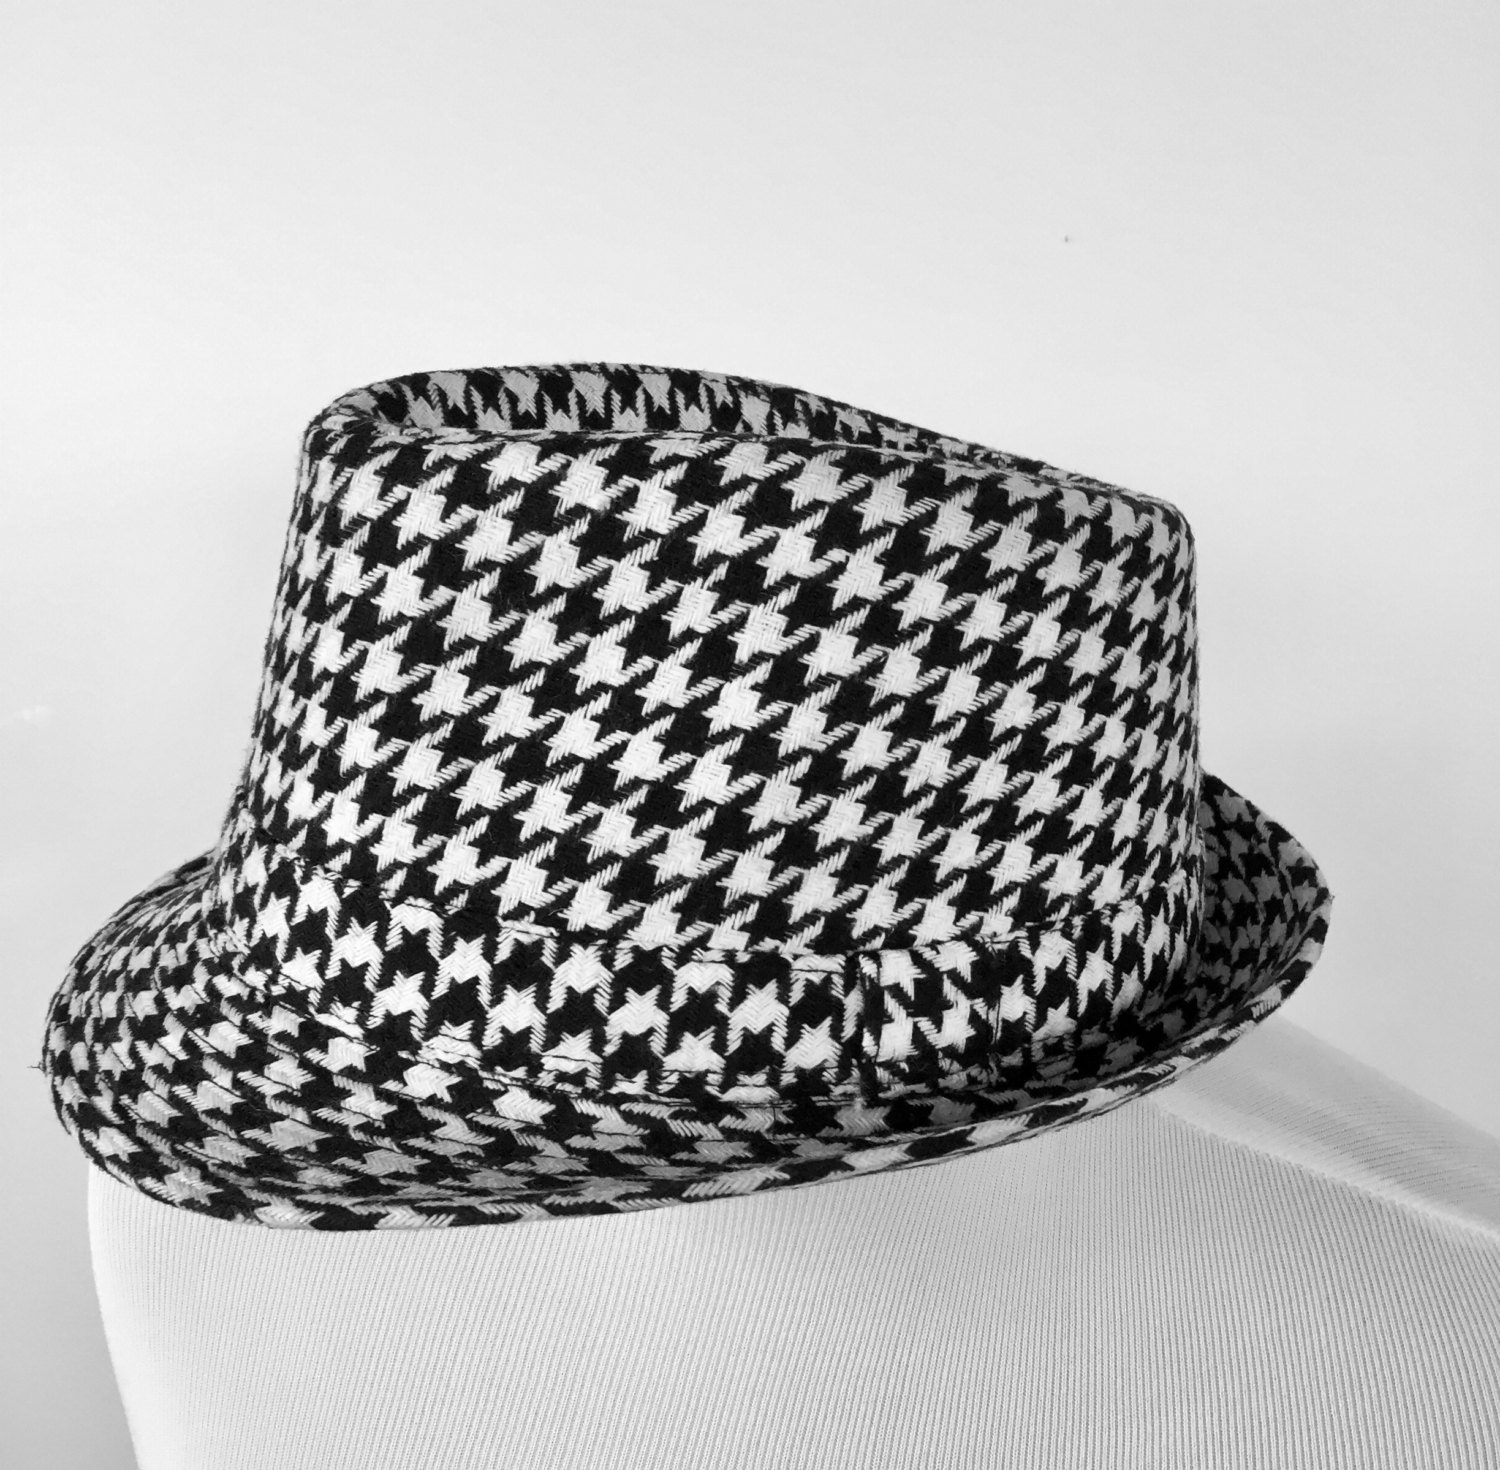 new products f79fa 036d5 ... purchase gifts for her bridesmaids gifts embroidered fedora hats gifts  for women houndstooth hats alabama fedora